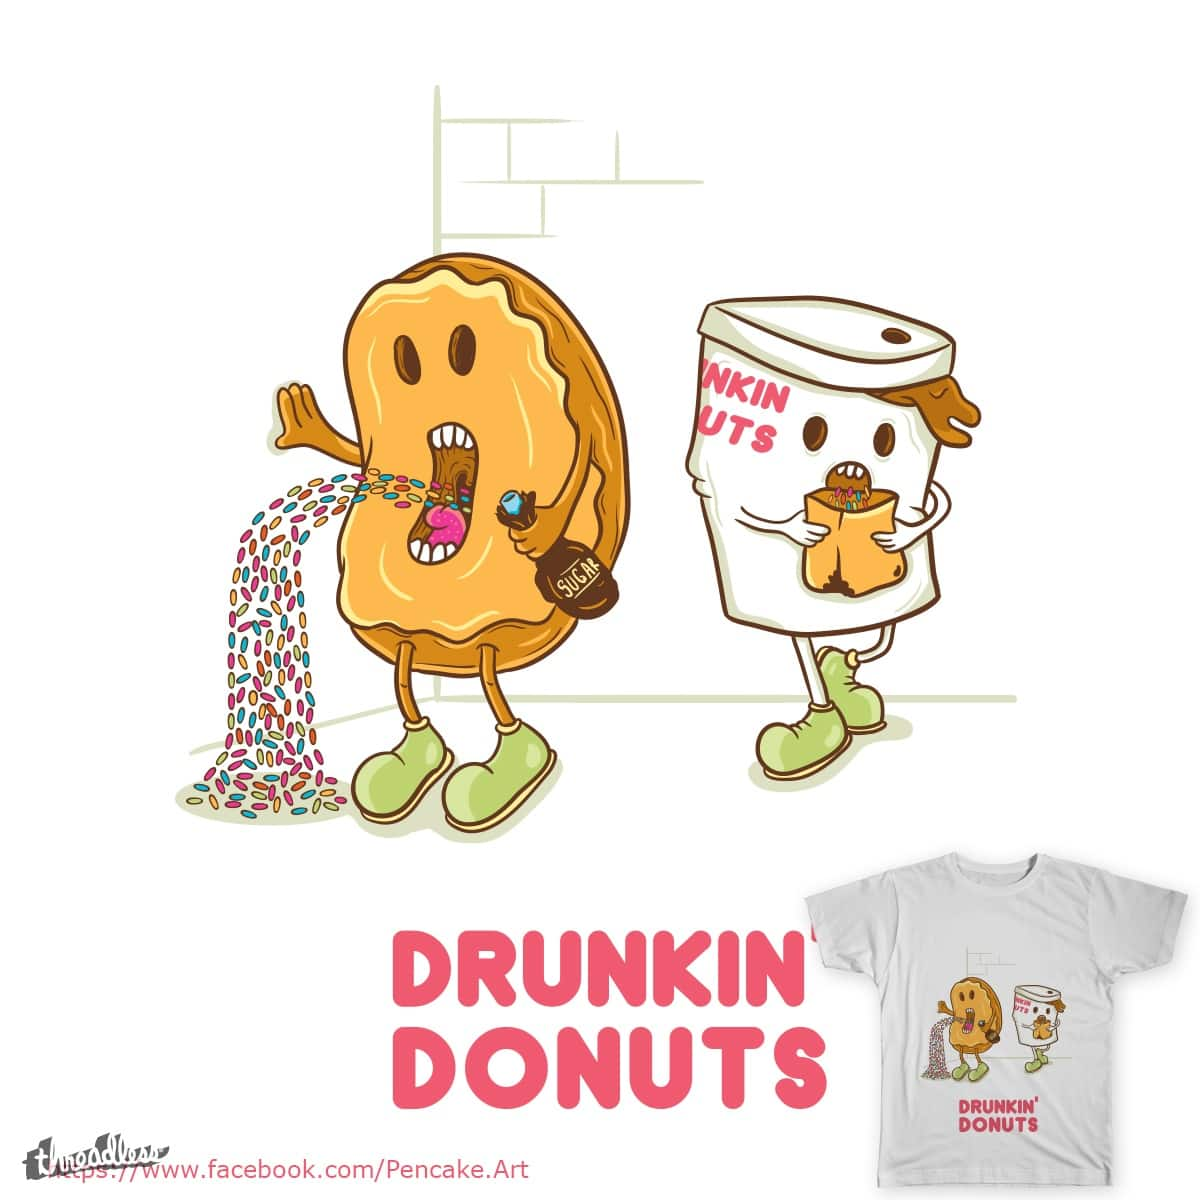 Drunkin Donuts by Pencake on Threadless